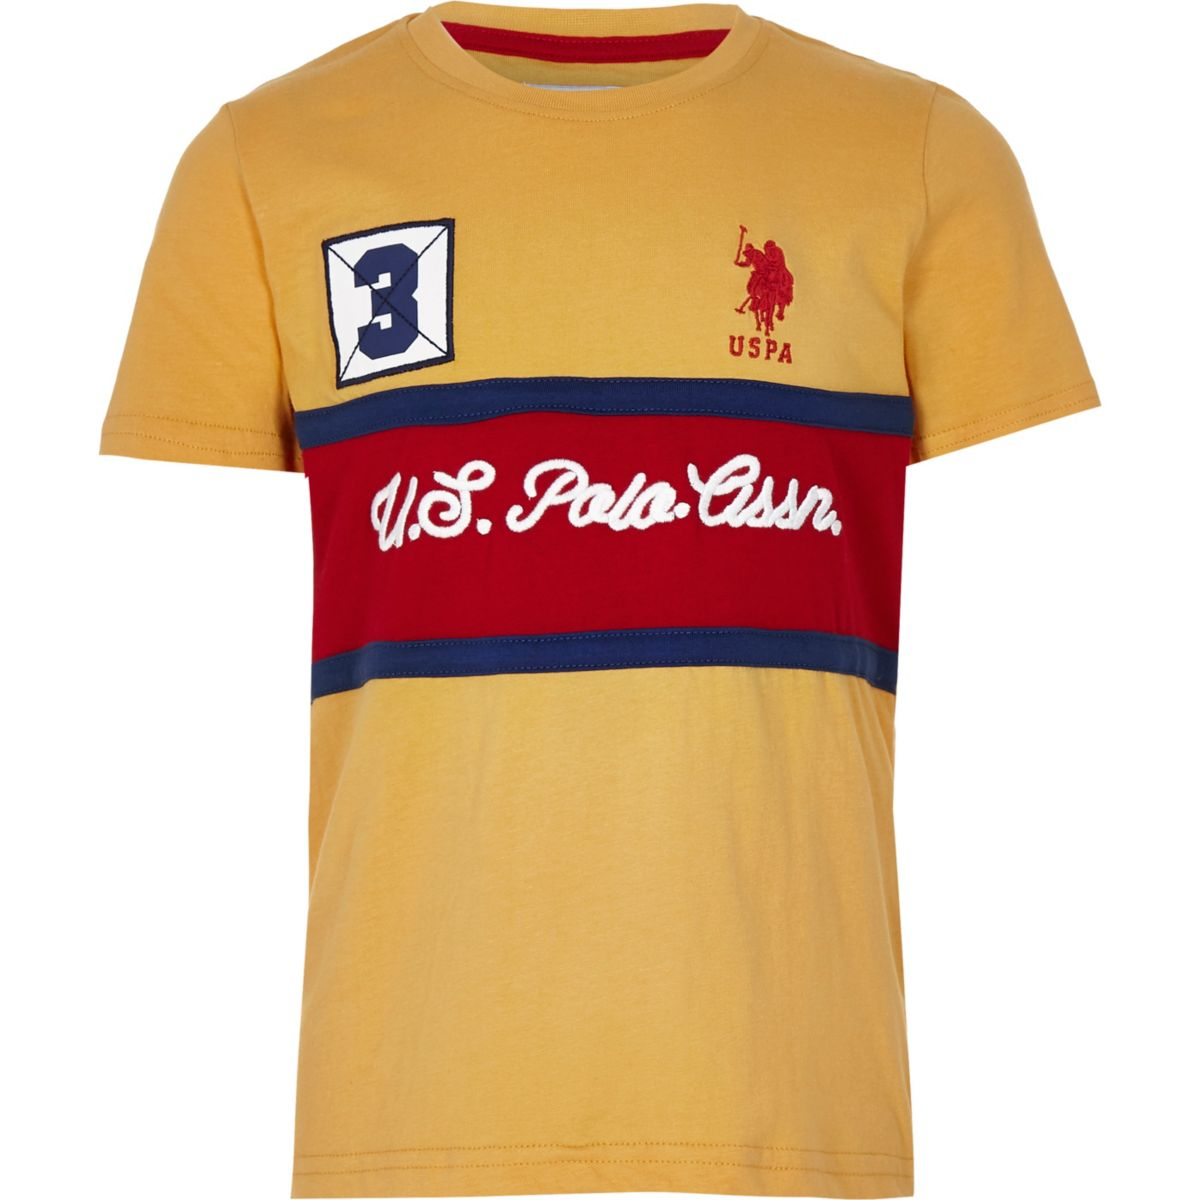 Boys U.S. Polo Assn. yellow T-shirt